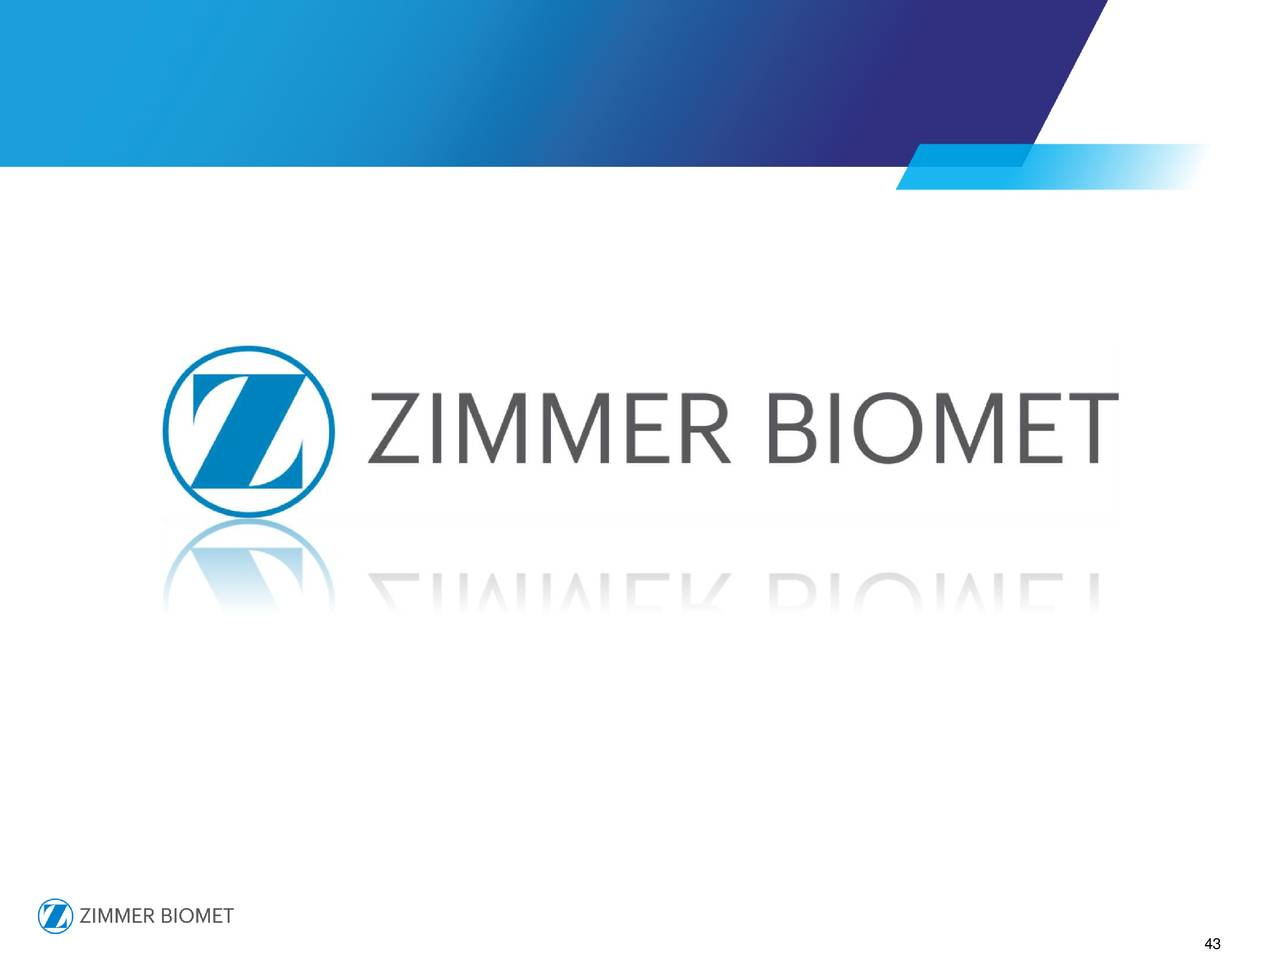 Zimmer biomet holdings inc 2017 q3 results earnings for Zimmer biomet holdings